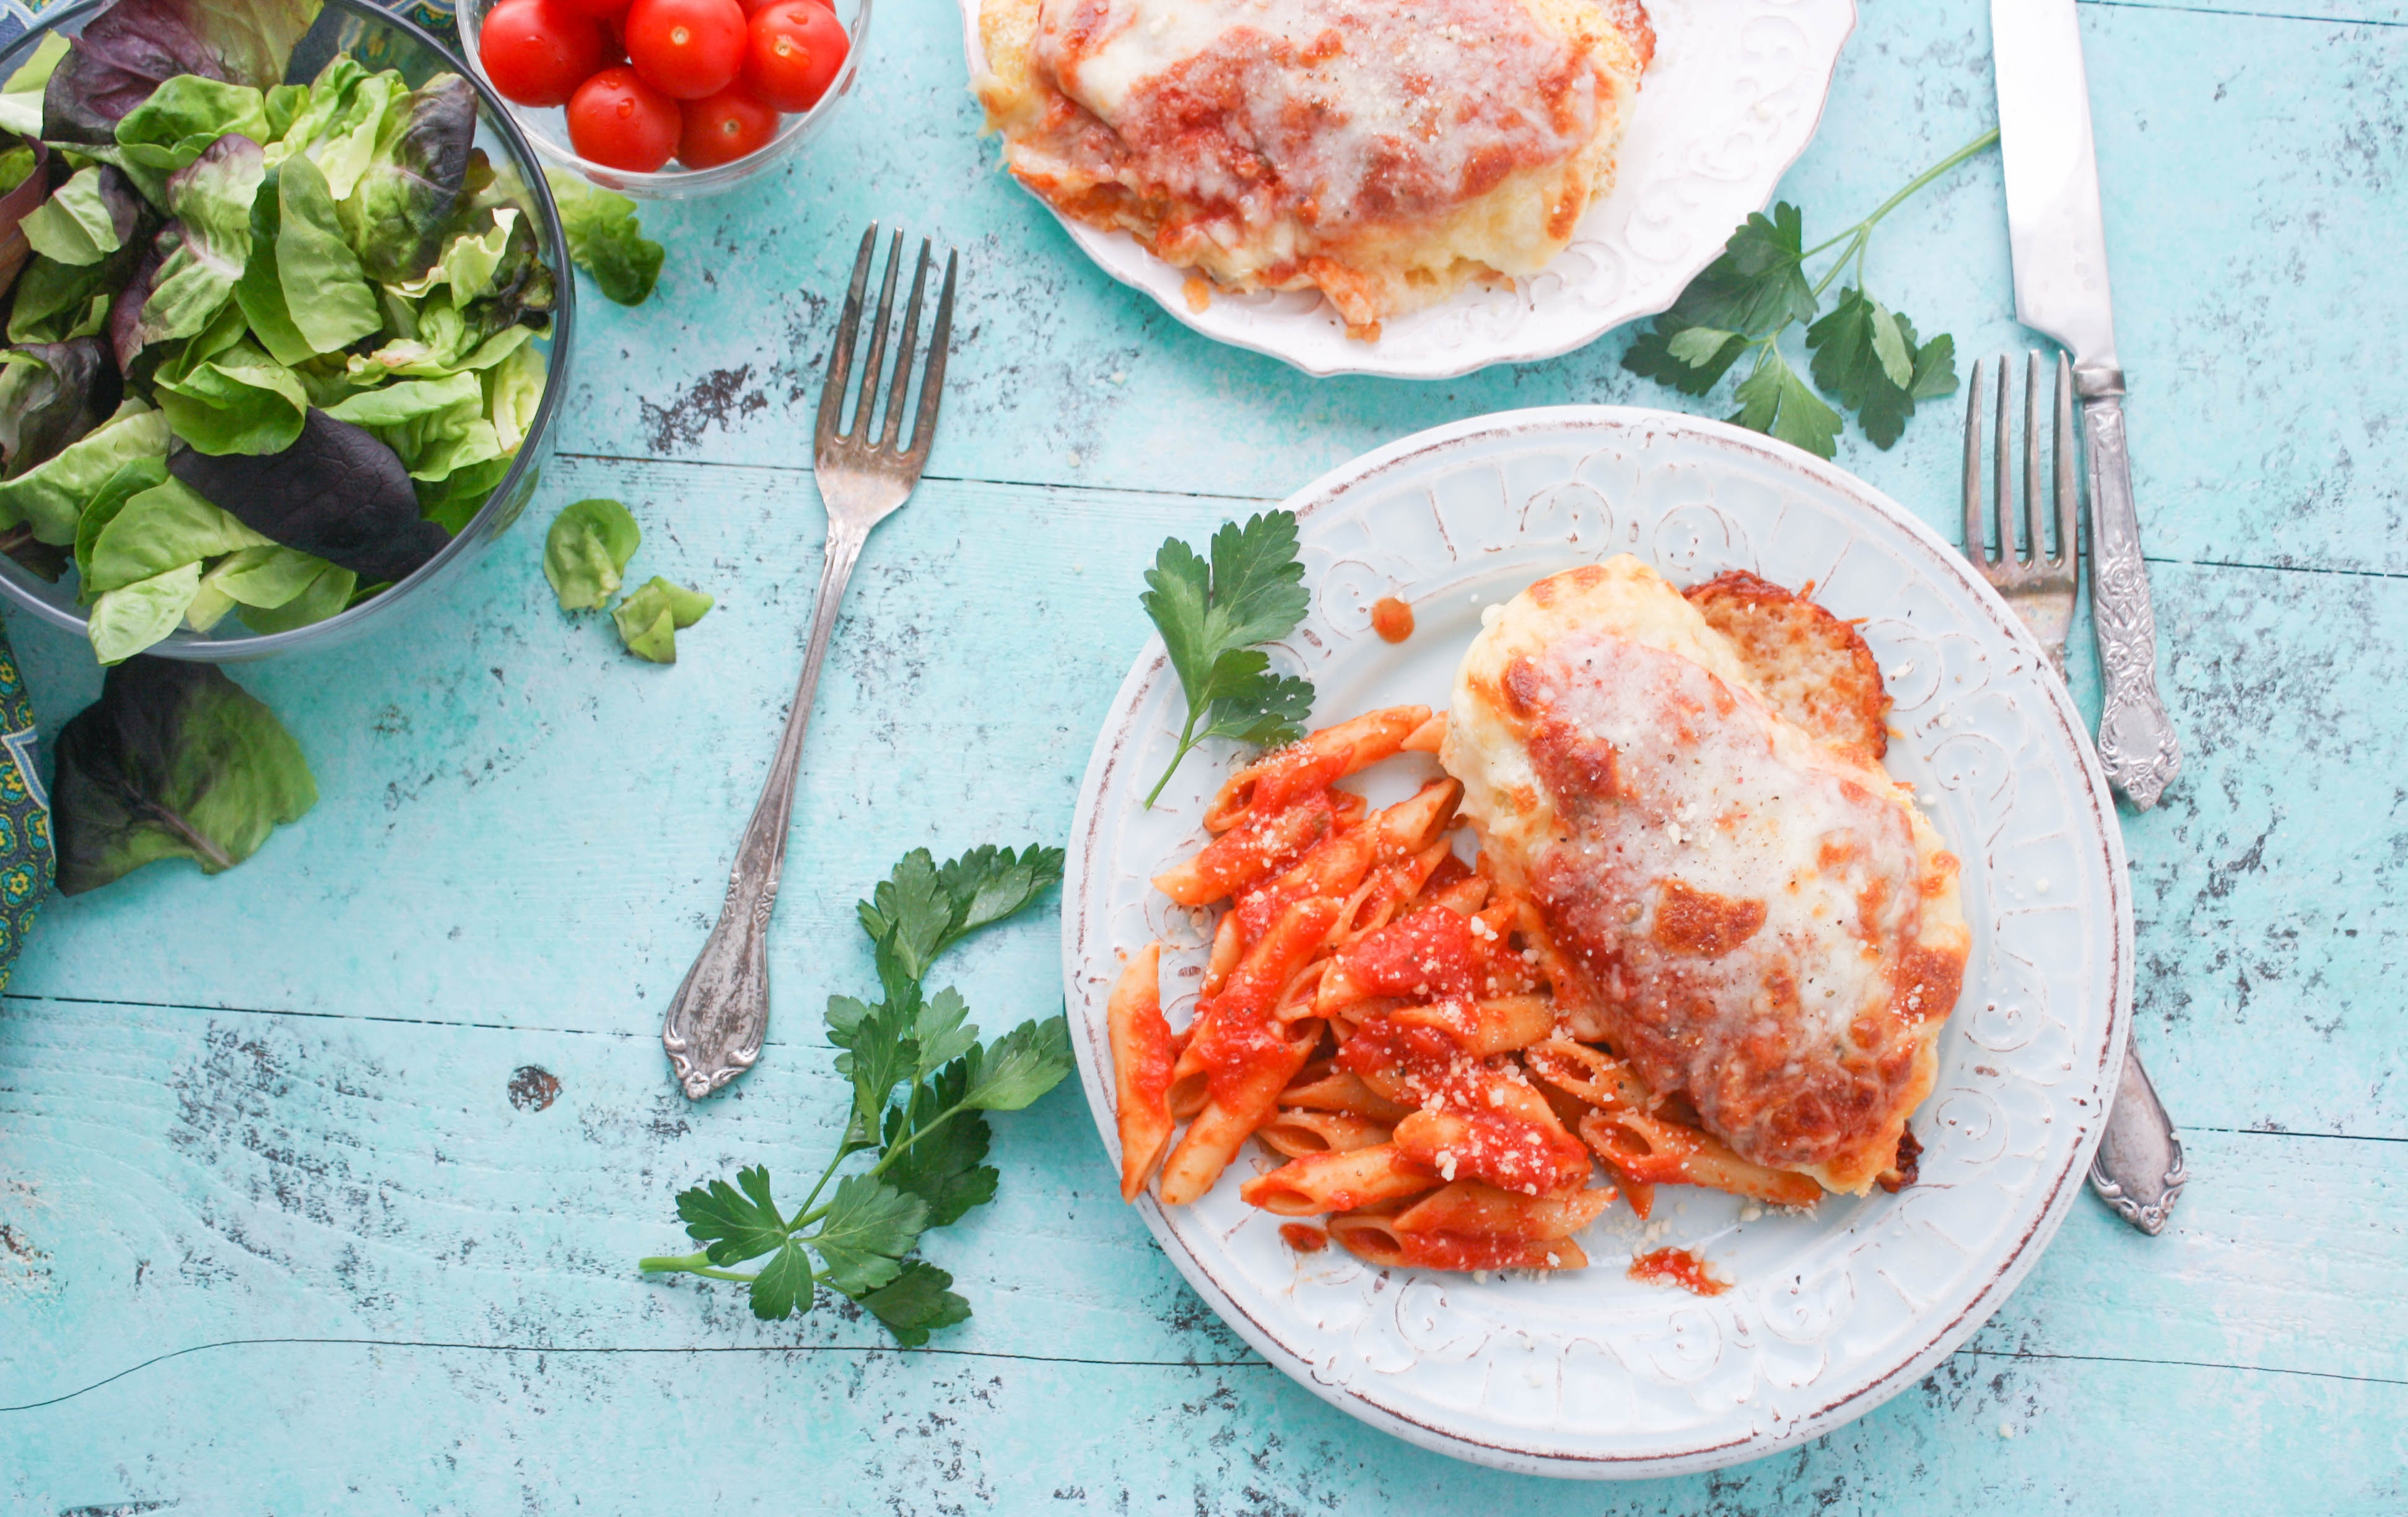 Classic Baked Chicken Parmesan is a great dish for any meal. Enjoy Classic Baked Chicken Parmesan any night of the week.